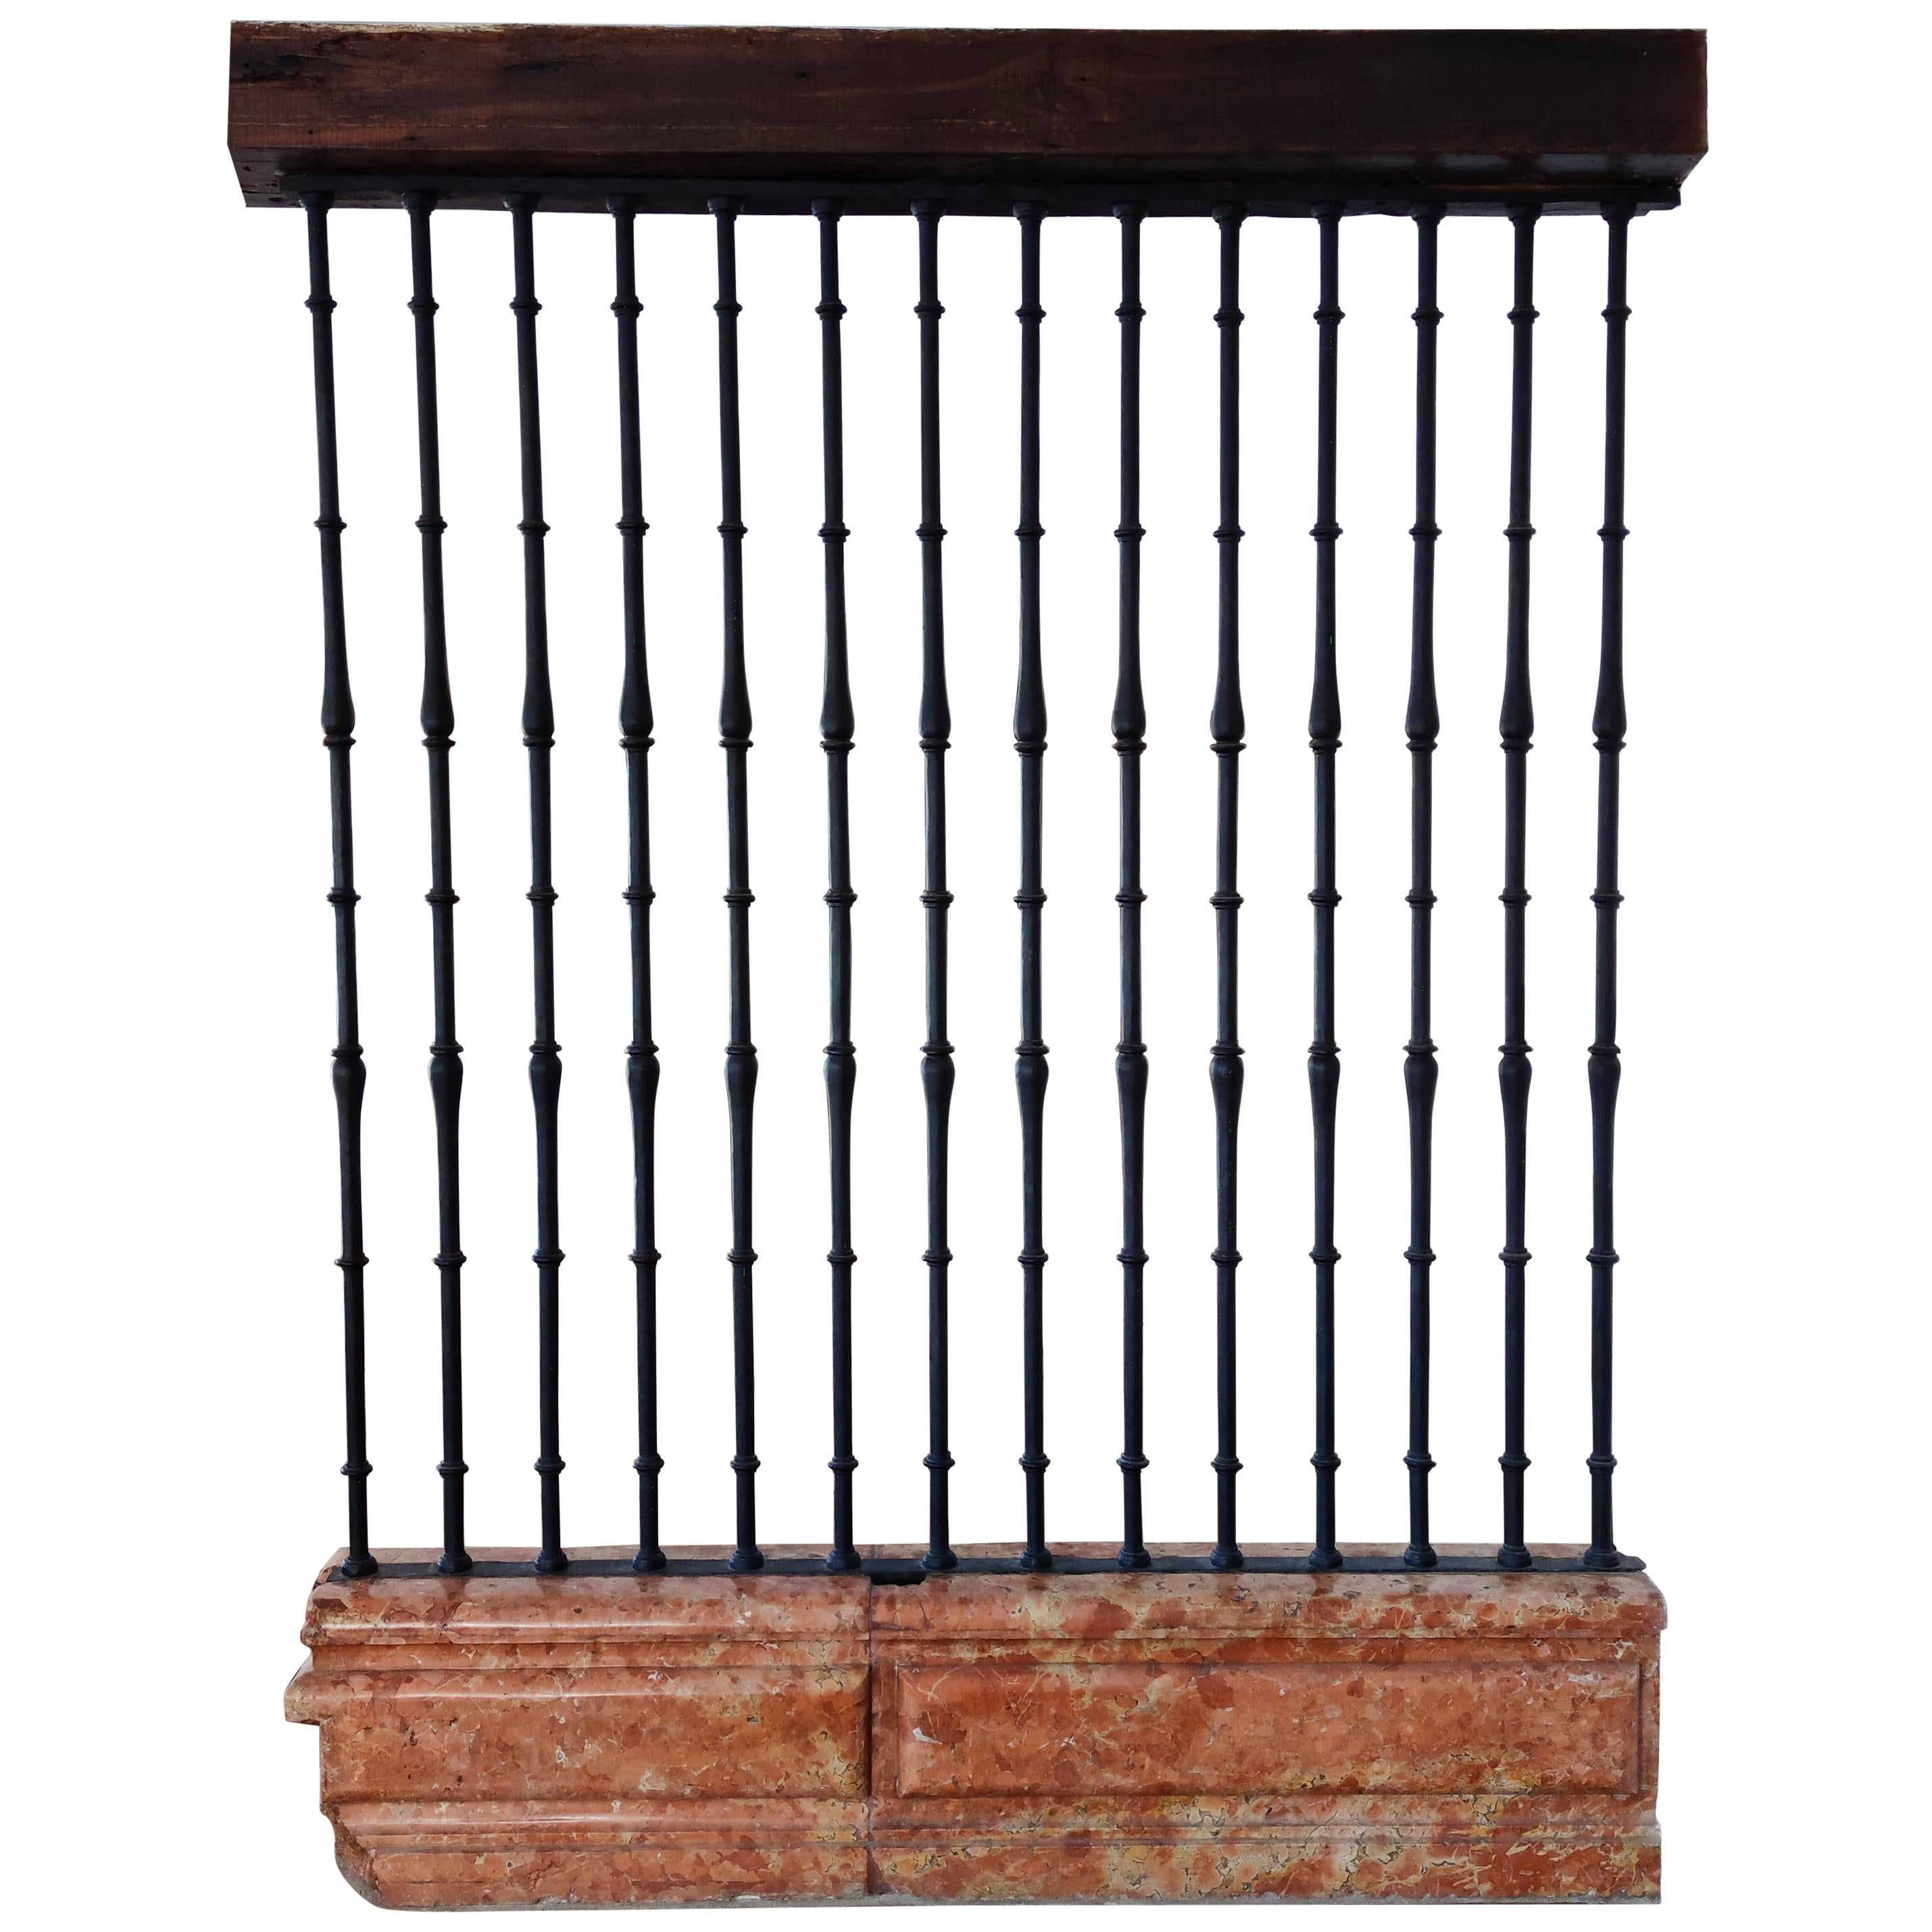 17th Century Spanish Wrought Iron Grille on Rosa Marble Base